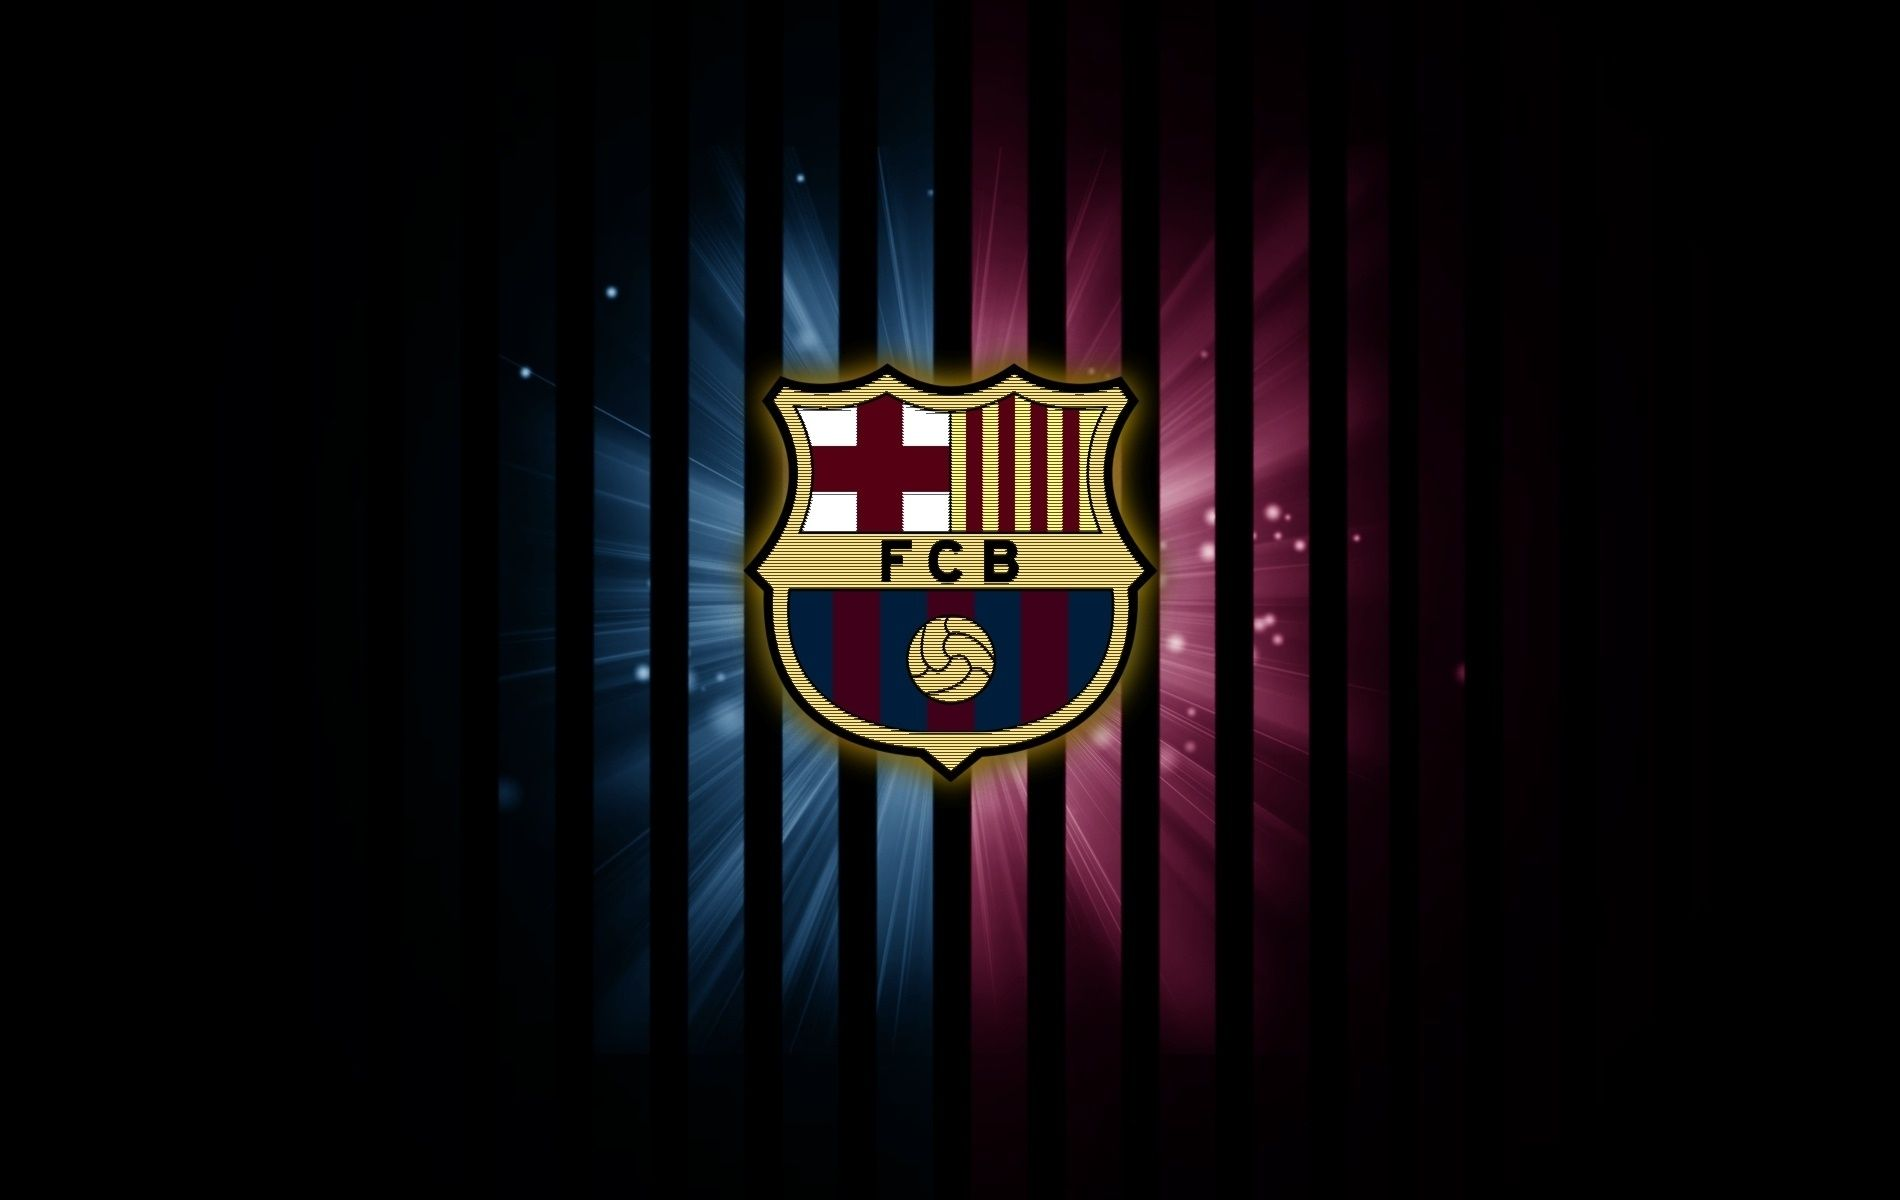 fc barcelona wallpapers images | download file | pinterest